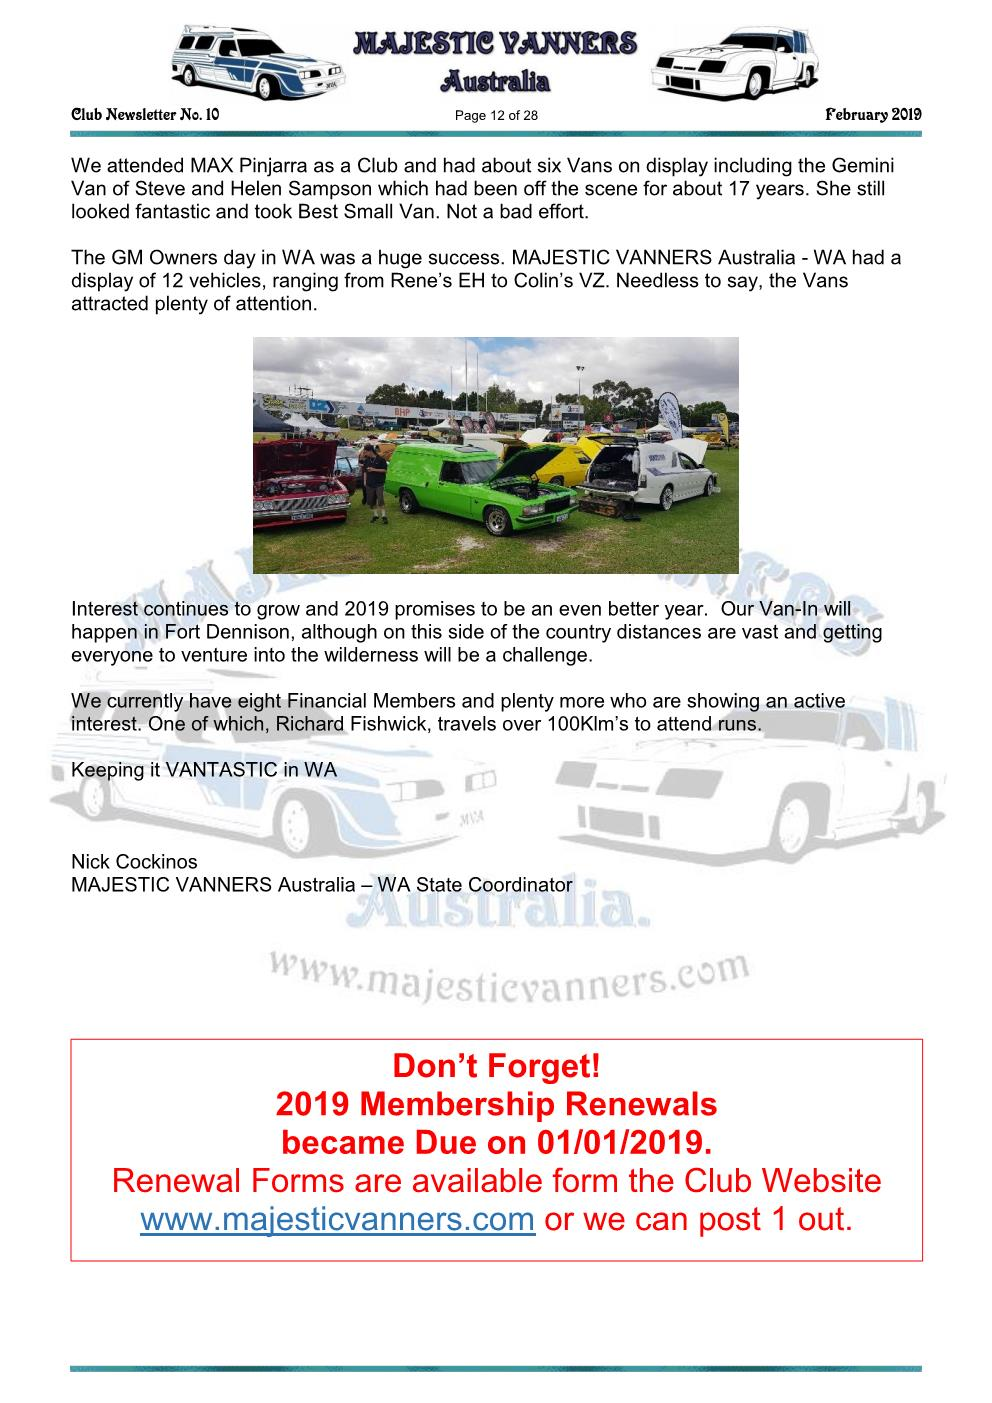 MAJESTIC VANNERS Newsletter Issue No: 10 February 2019 Mv_new21